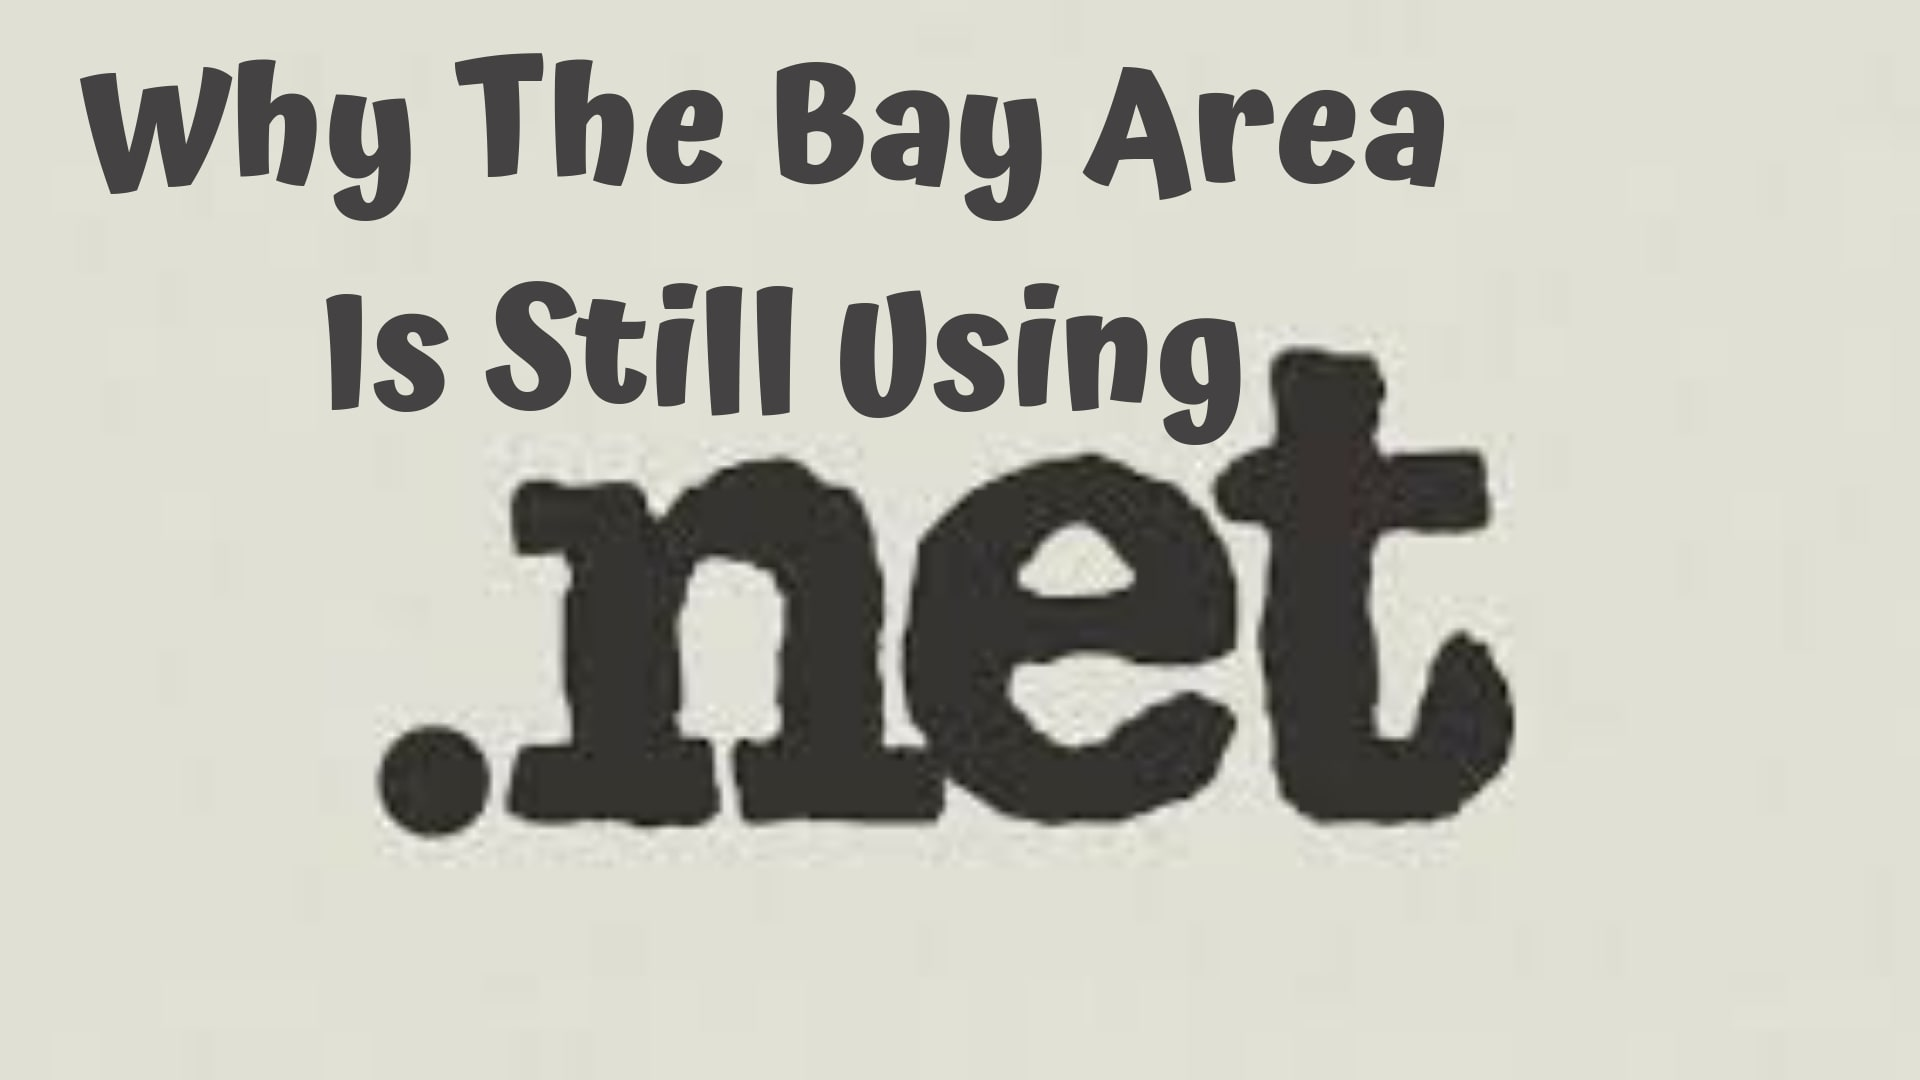 Why The Bay Area Is Still Using .NET